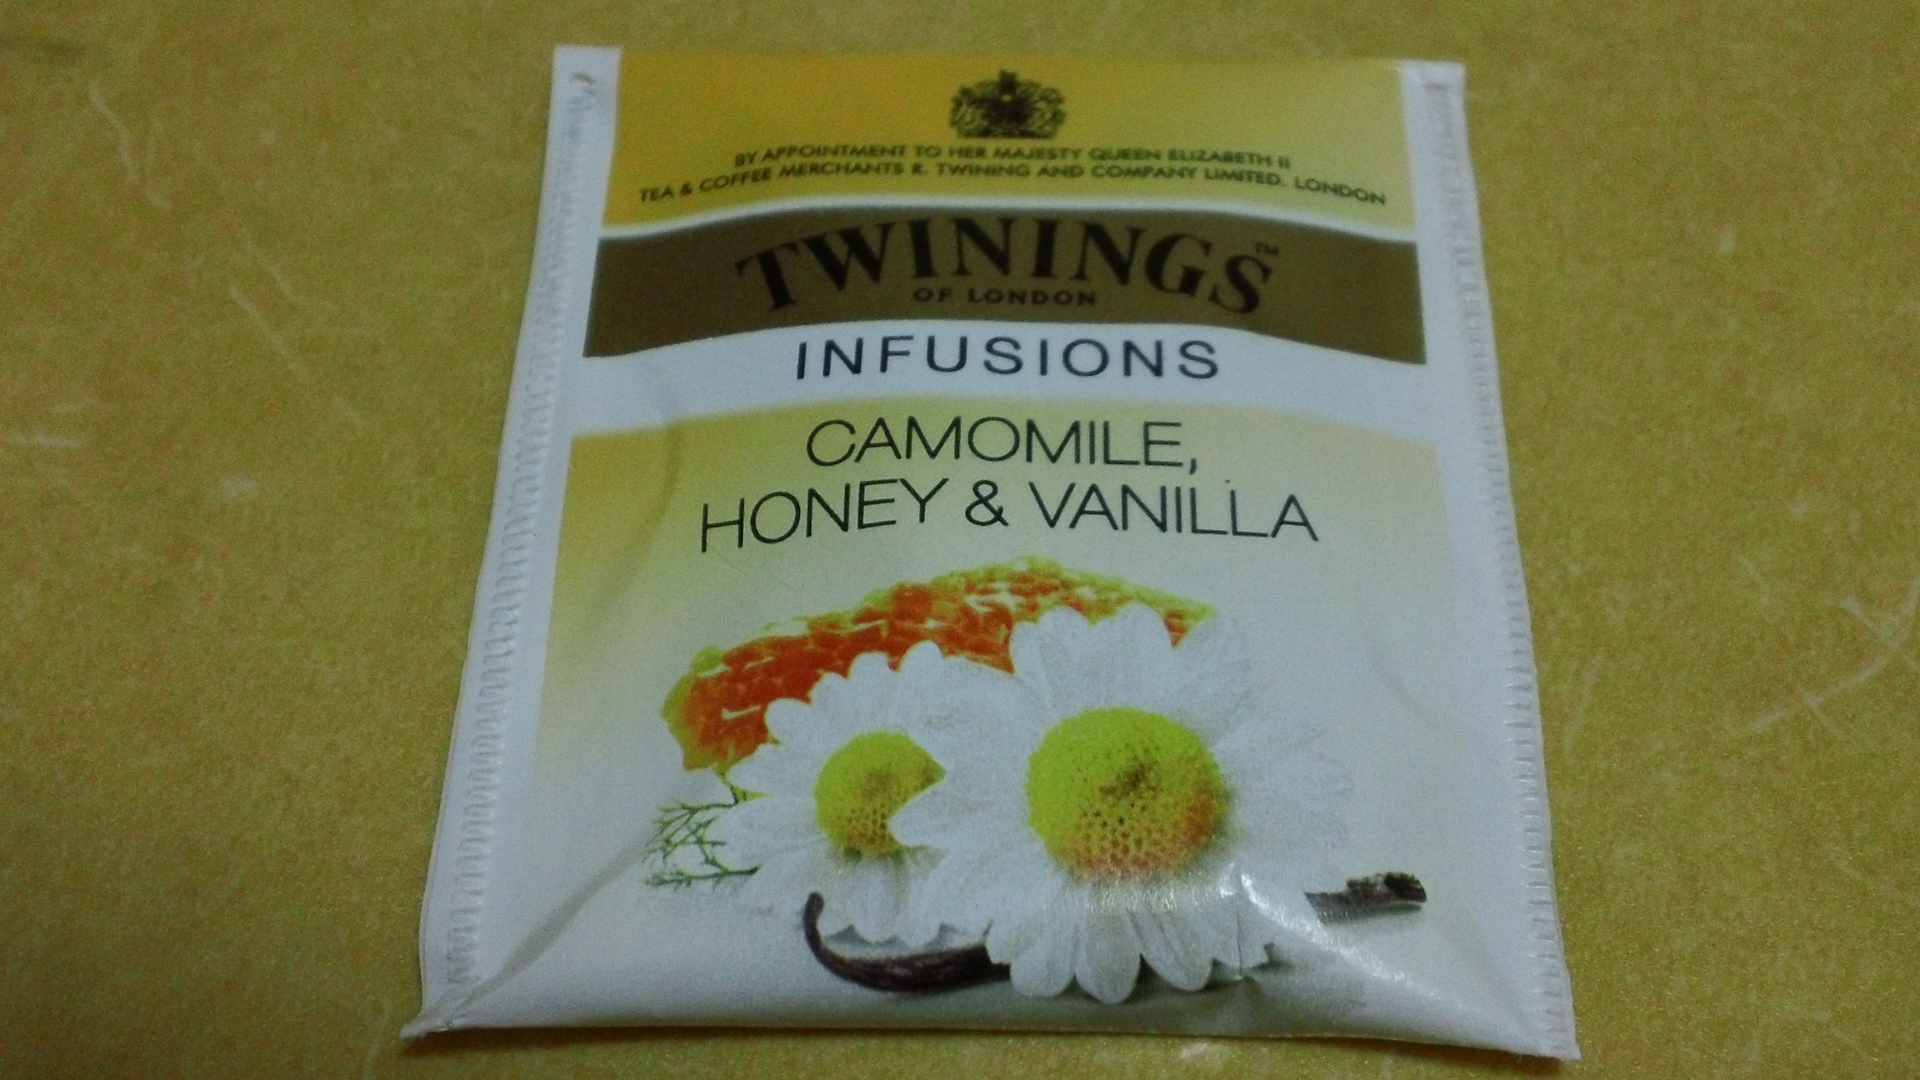 Tea - Twining, Camomile, Honey & Vanilla